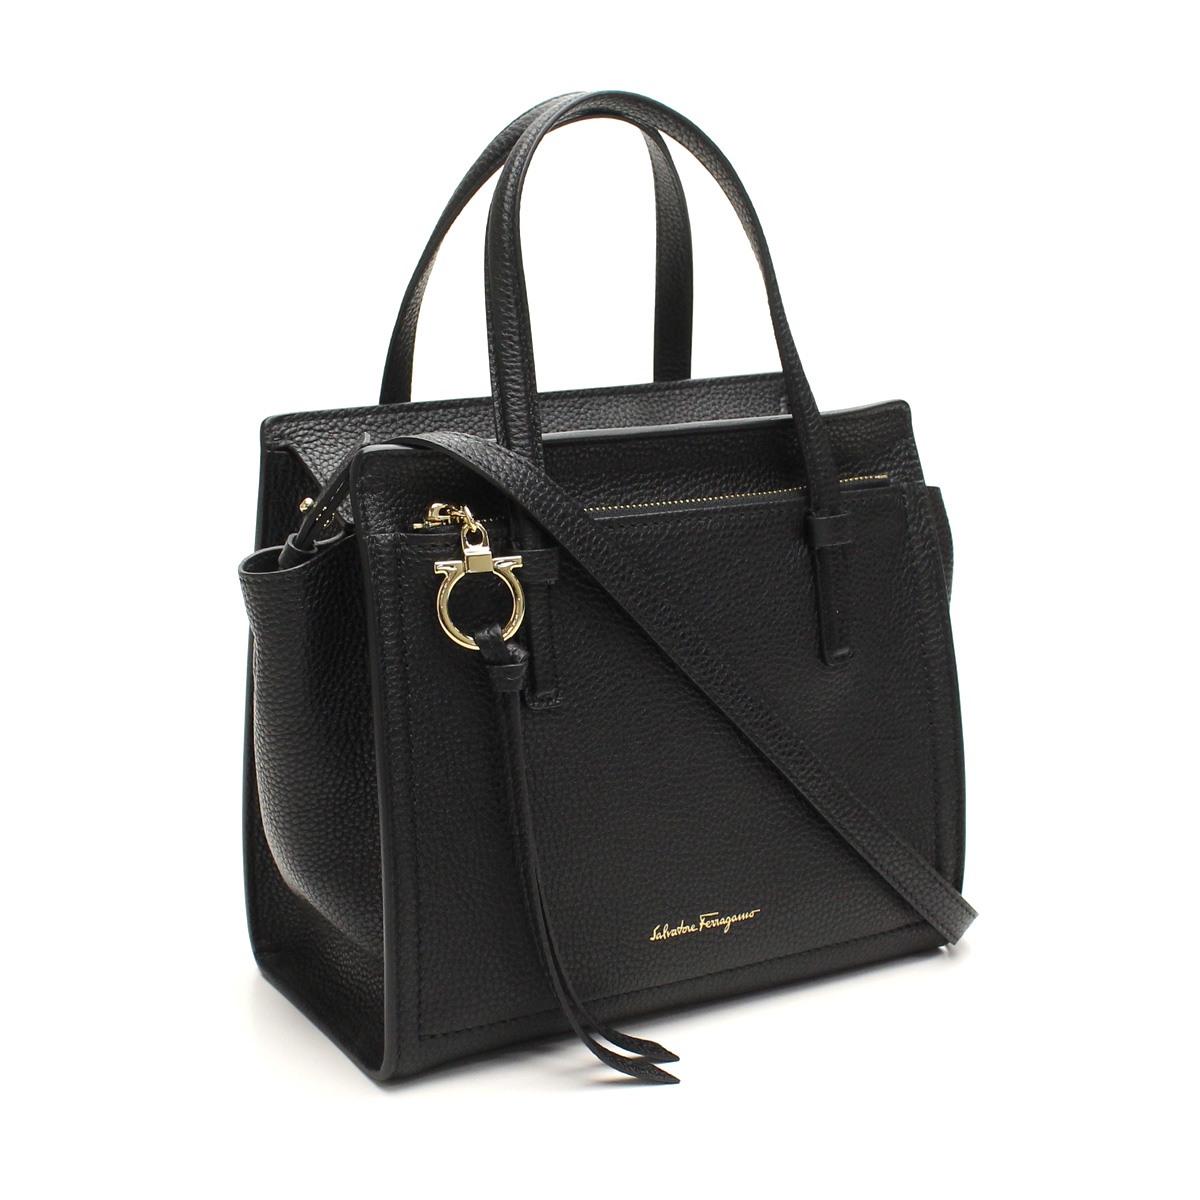 The Ferragamo Product List Click Here